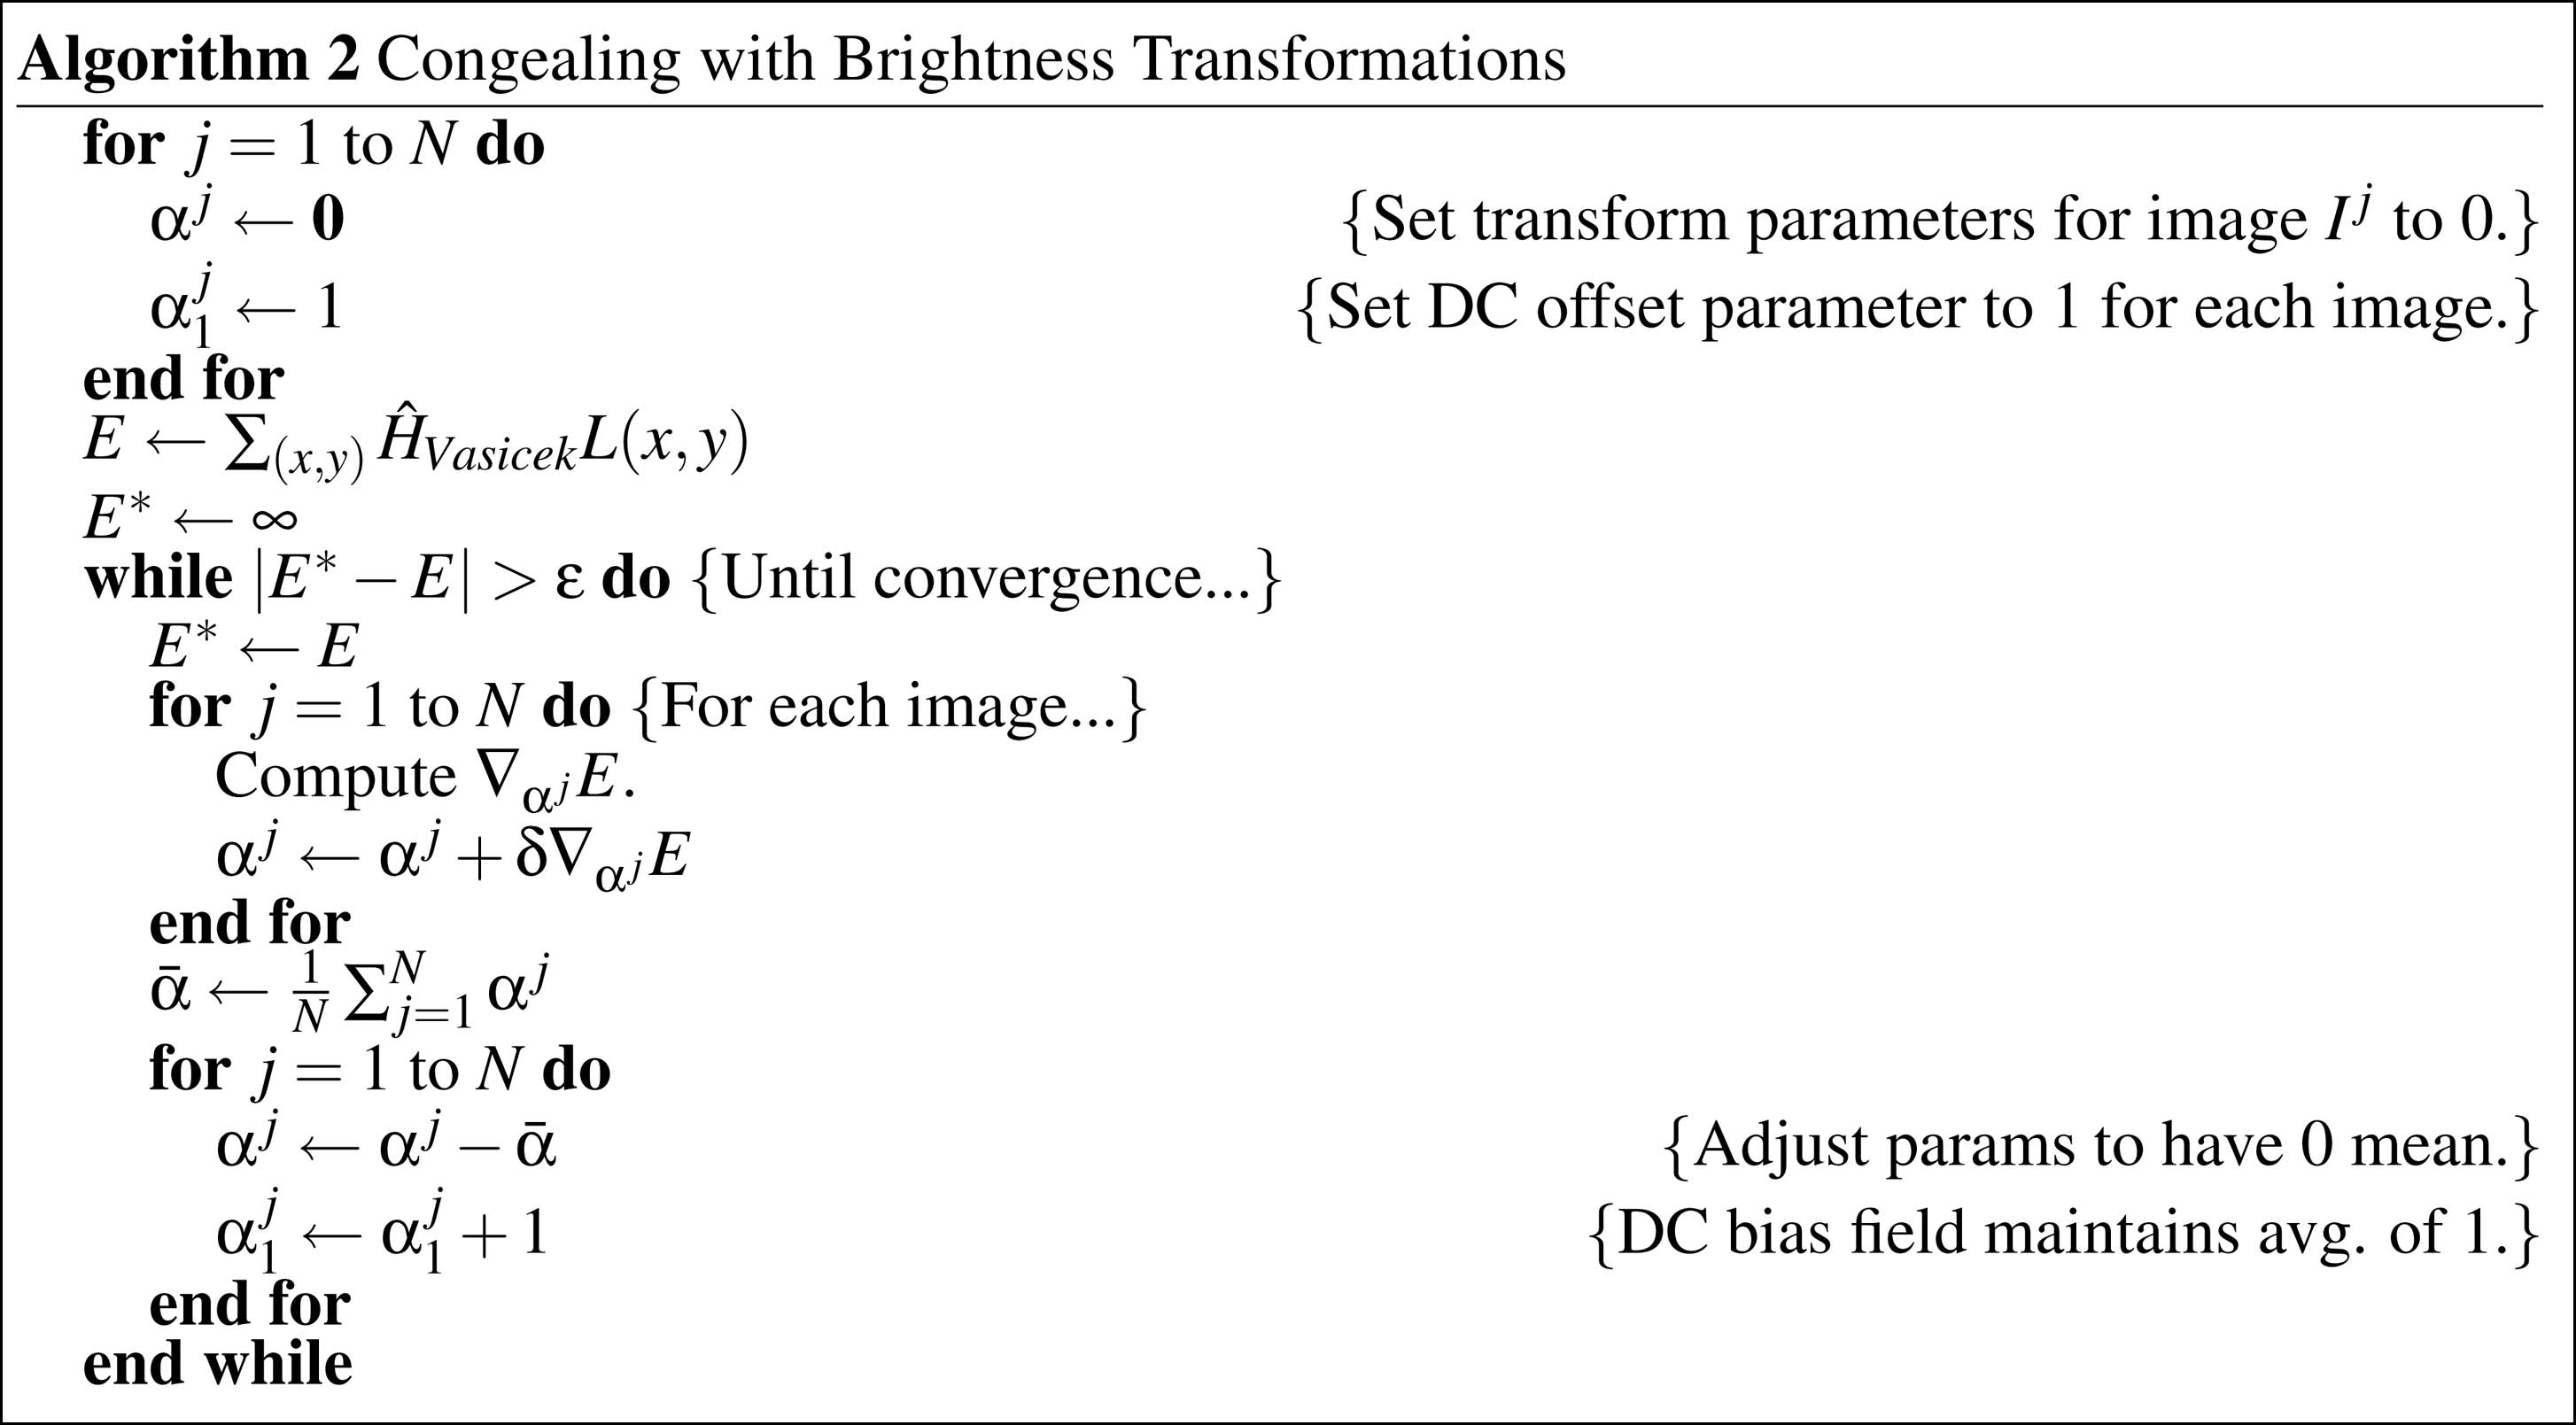 246 IEEE TRANSACTIONS ON PATTERN ANALYSIS AND MACHINE INTELLIGENCE, VOL. 28, NO. 2, FEBRUARY 2006 Fig. 12. Algorithm 2: Congealing with brightness transformations.